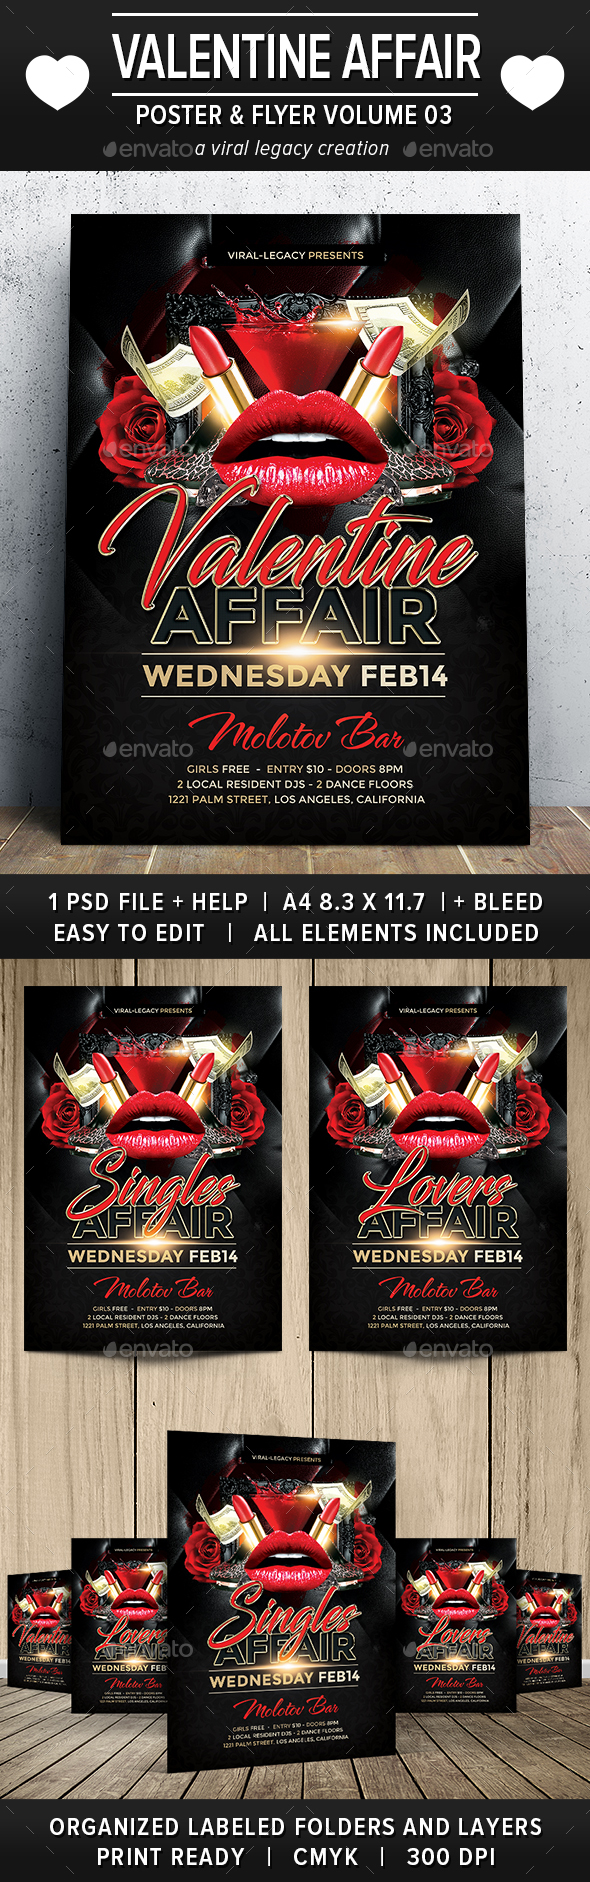 Valentine Affair Poster / Flyer V03 - Flyers Print Templates